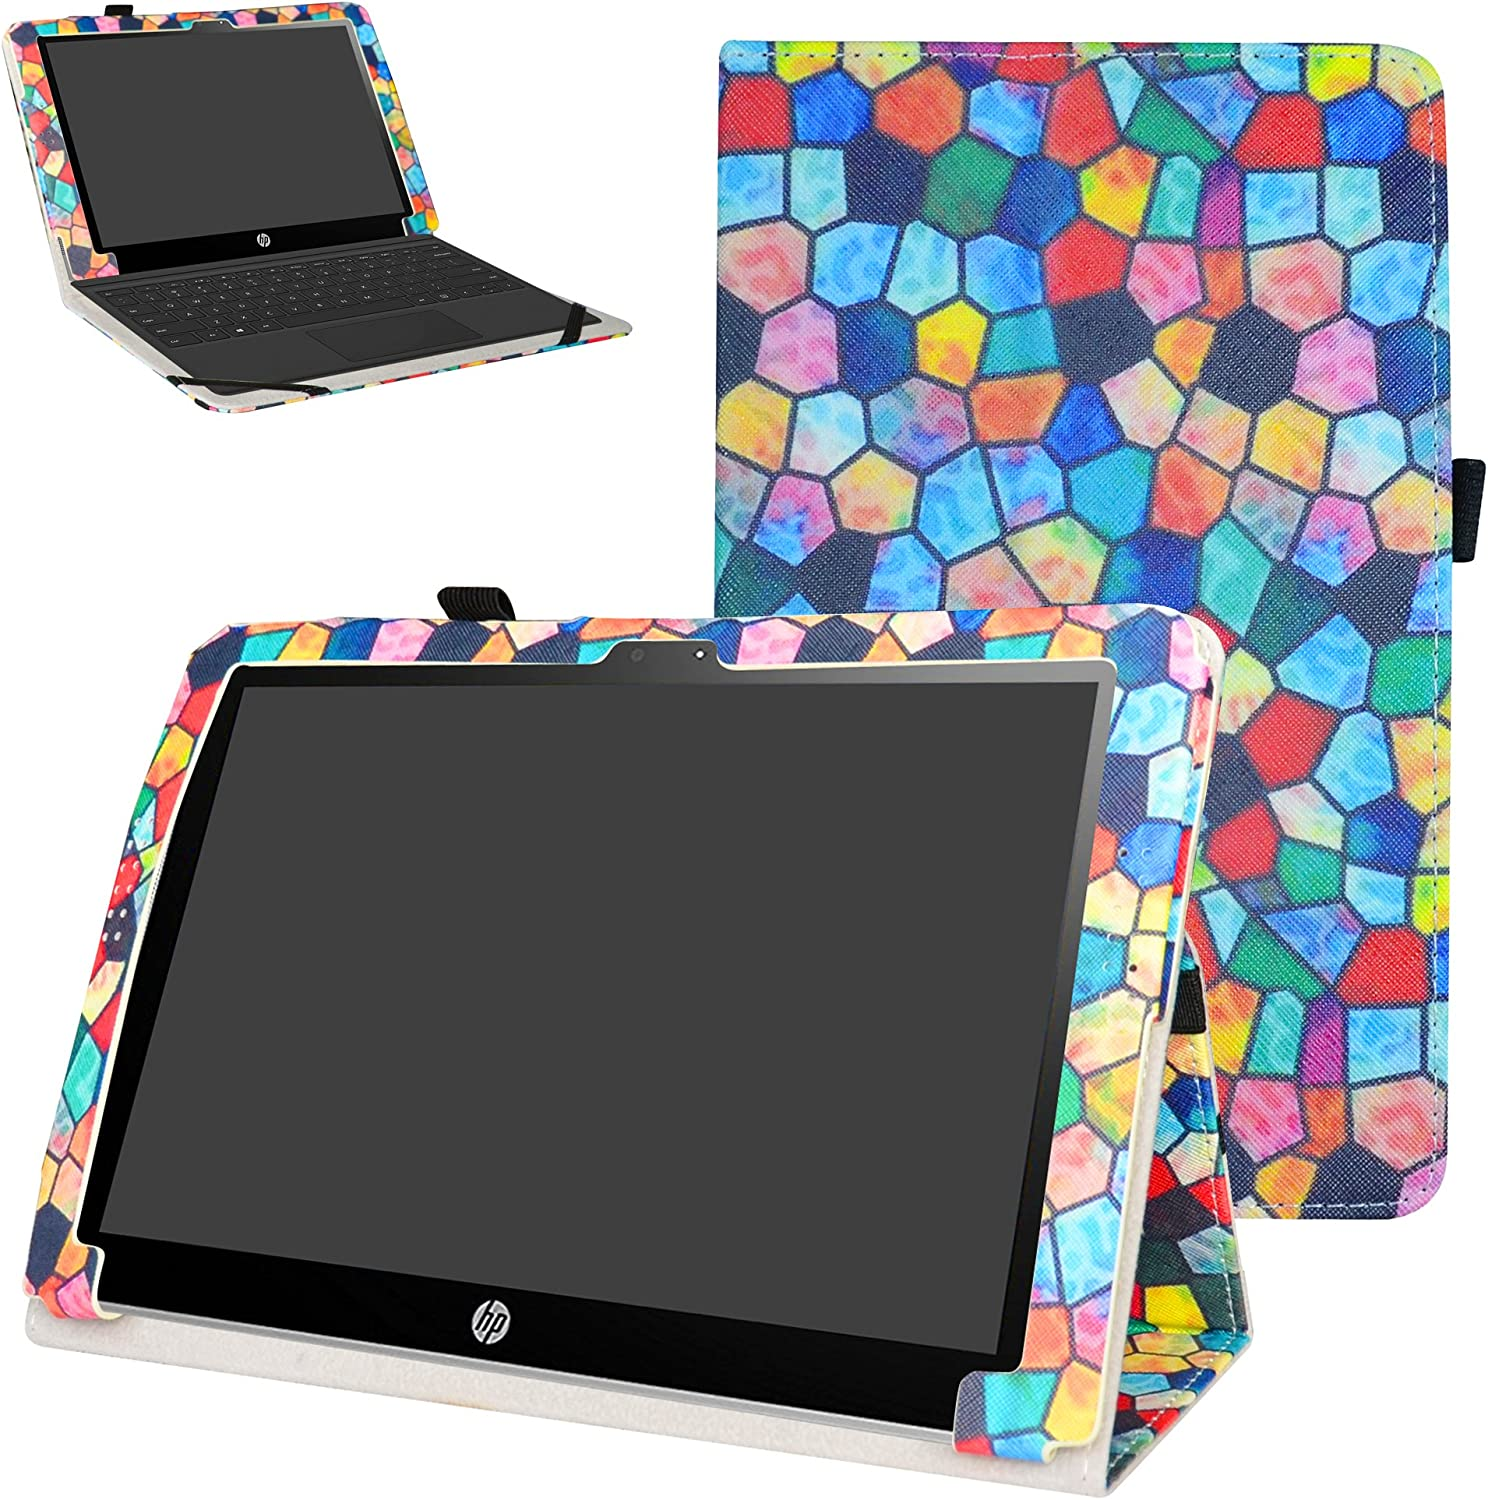 "Mama Mouth PU Leather Folio Folding Stand Case Cover for 10.1"" HP X2 10 10-p010nr 10-p020nr 10-p092ms Tablet(Only fit HP X2 10-p000nr Series,not fit HP Pavilion x2 10 10-n000nr Series),Stained Glass"